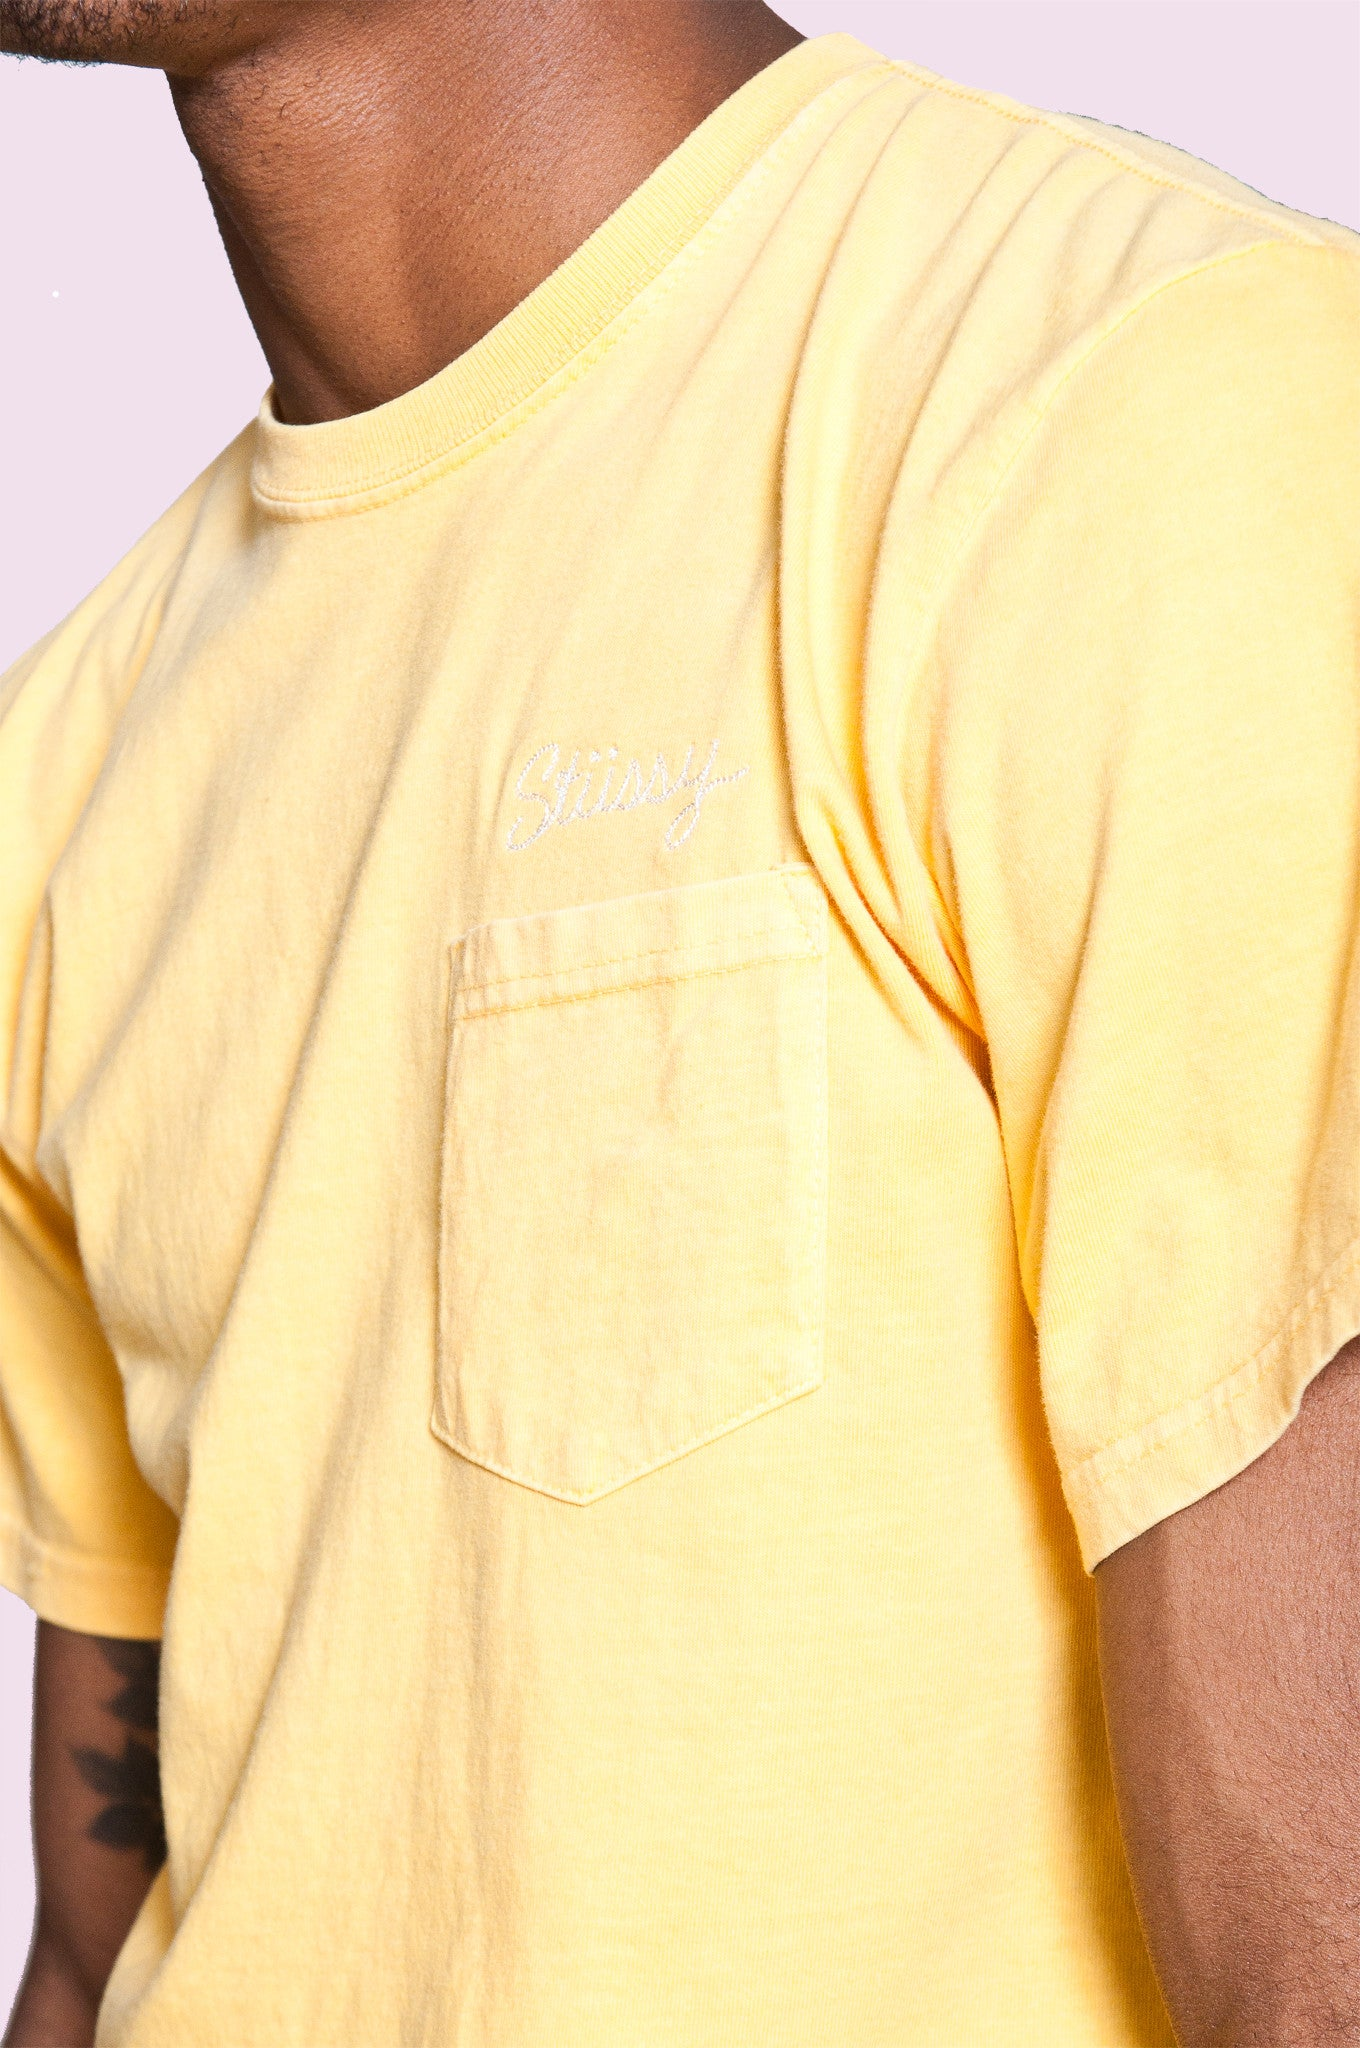 Stussy Stitch Pigment Dye Pocket Tee Yellow at shoplostfound 2